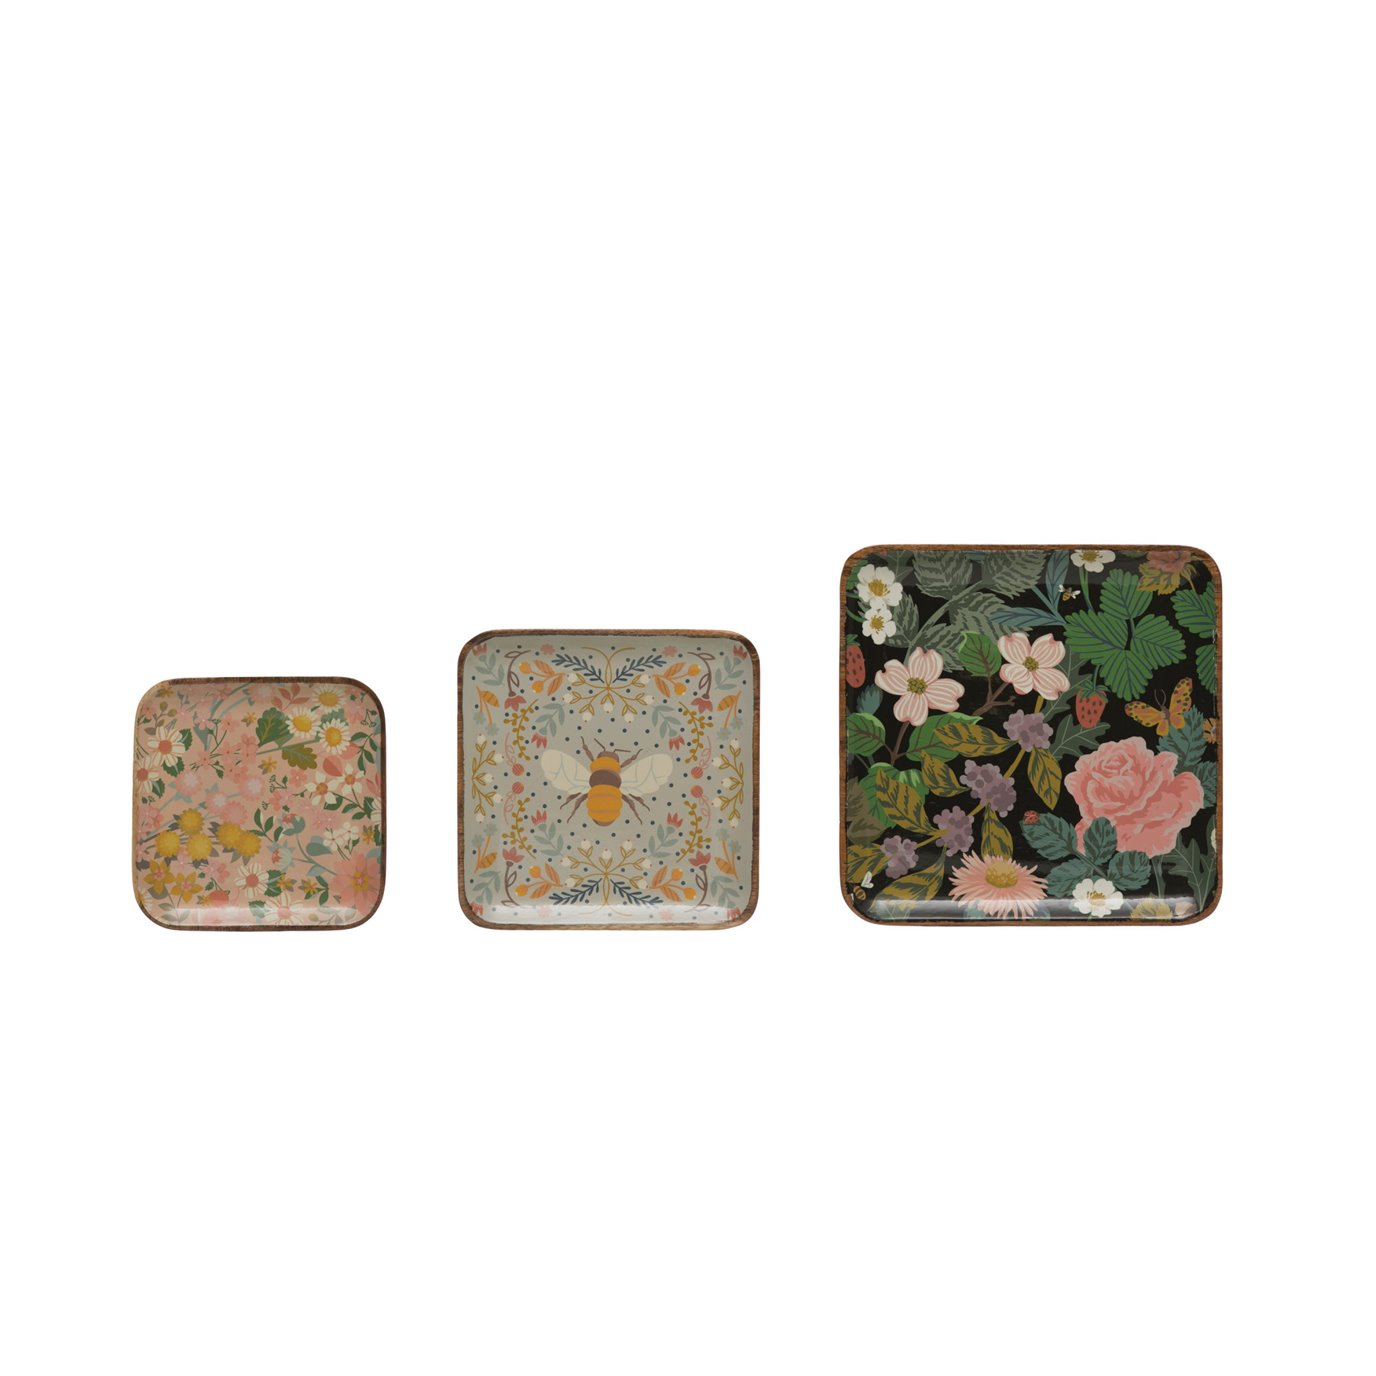 Square Enameled Acacia Wood Trays with Floral & Bee Patterns (Set of 3 Sizes/Patterns)